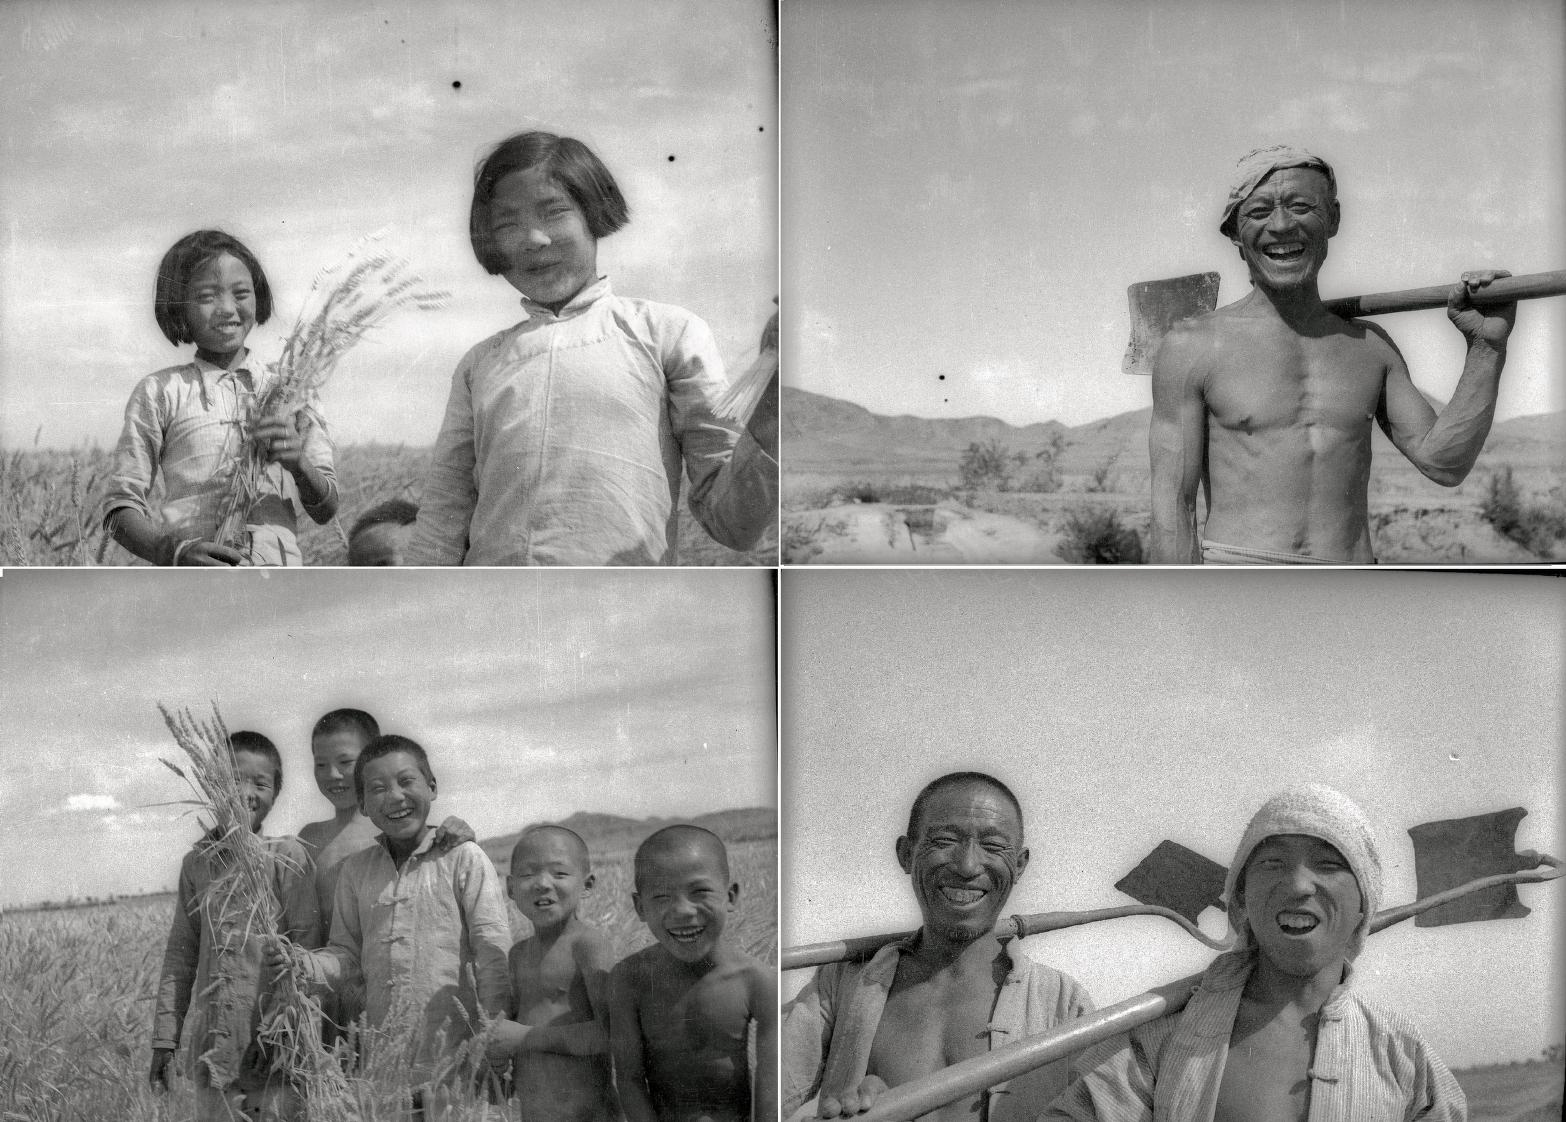 Gao Liang, 'The People Who Got Land', June 1948